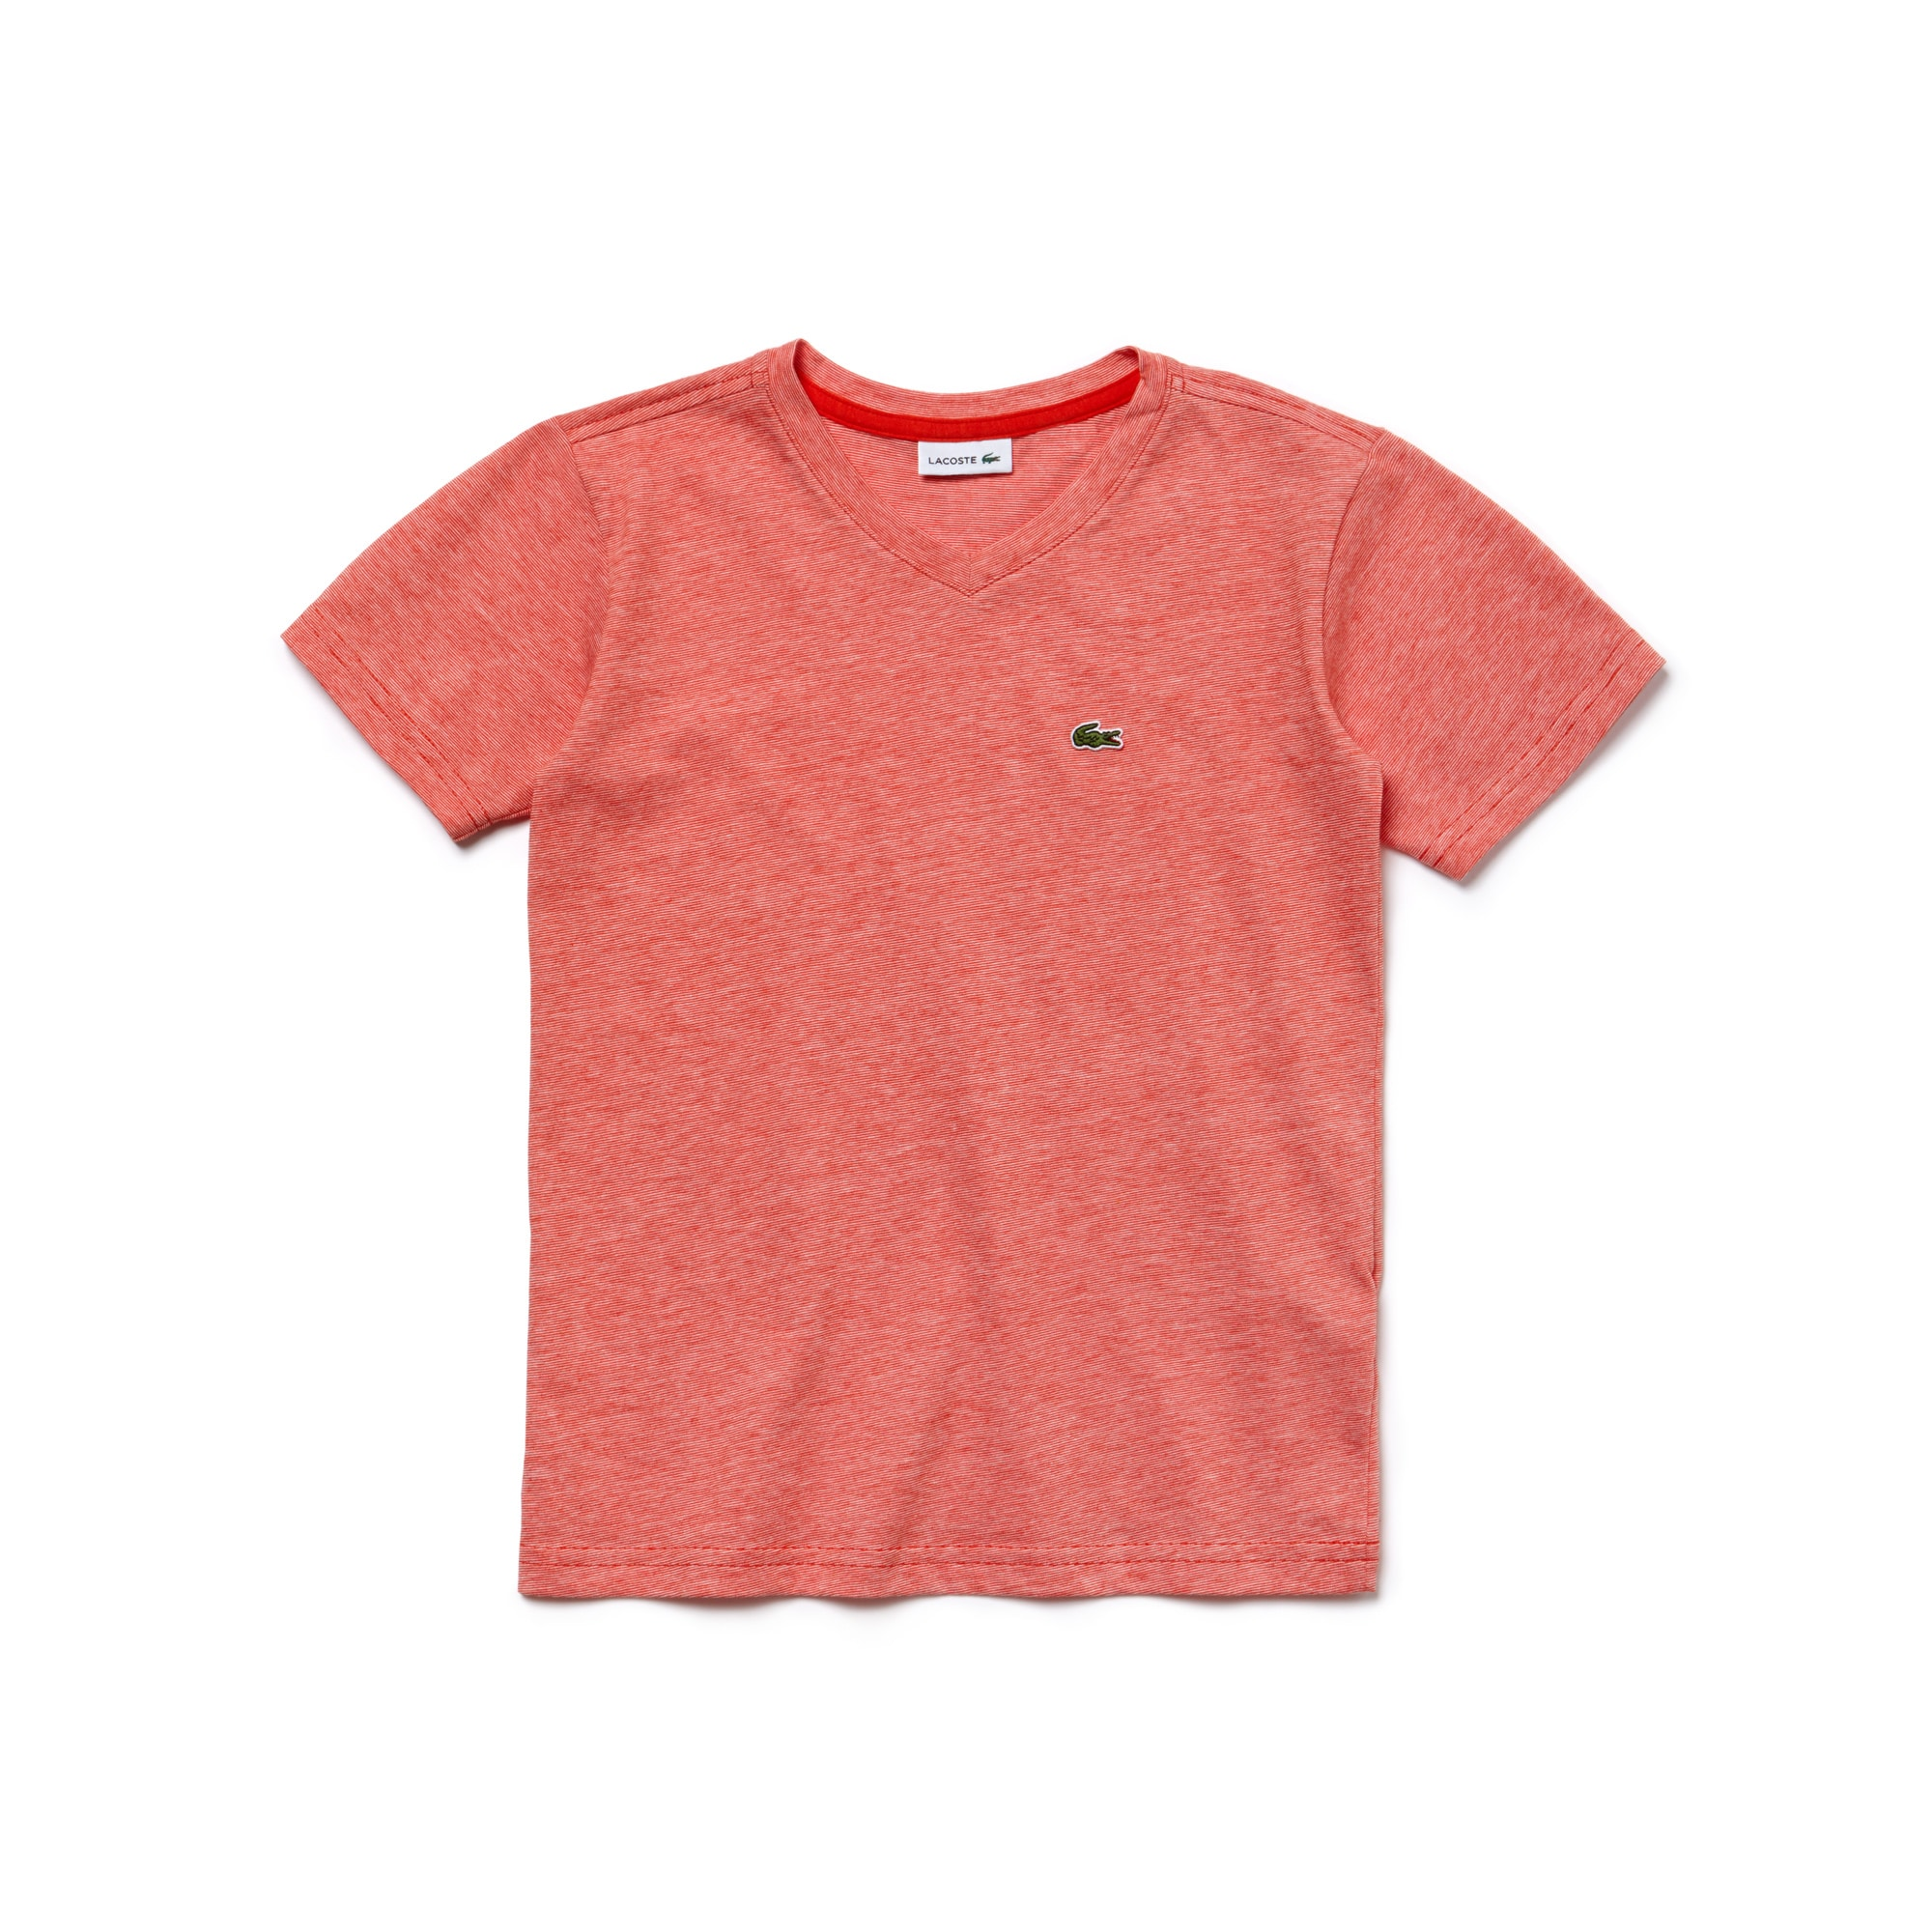 Boy's Striped Cotton V-Neck T-Shirt